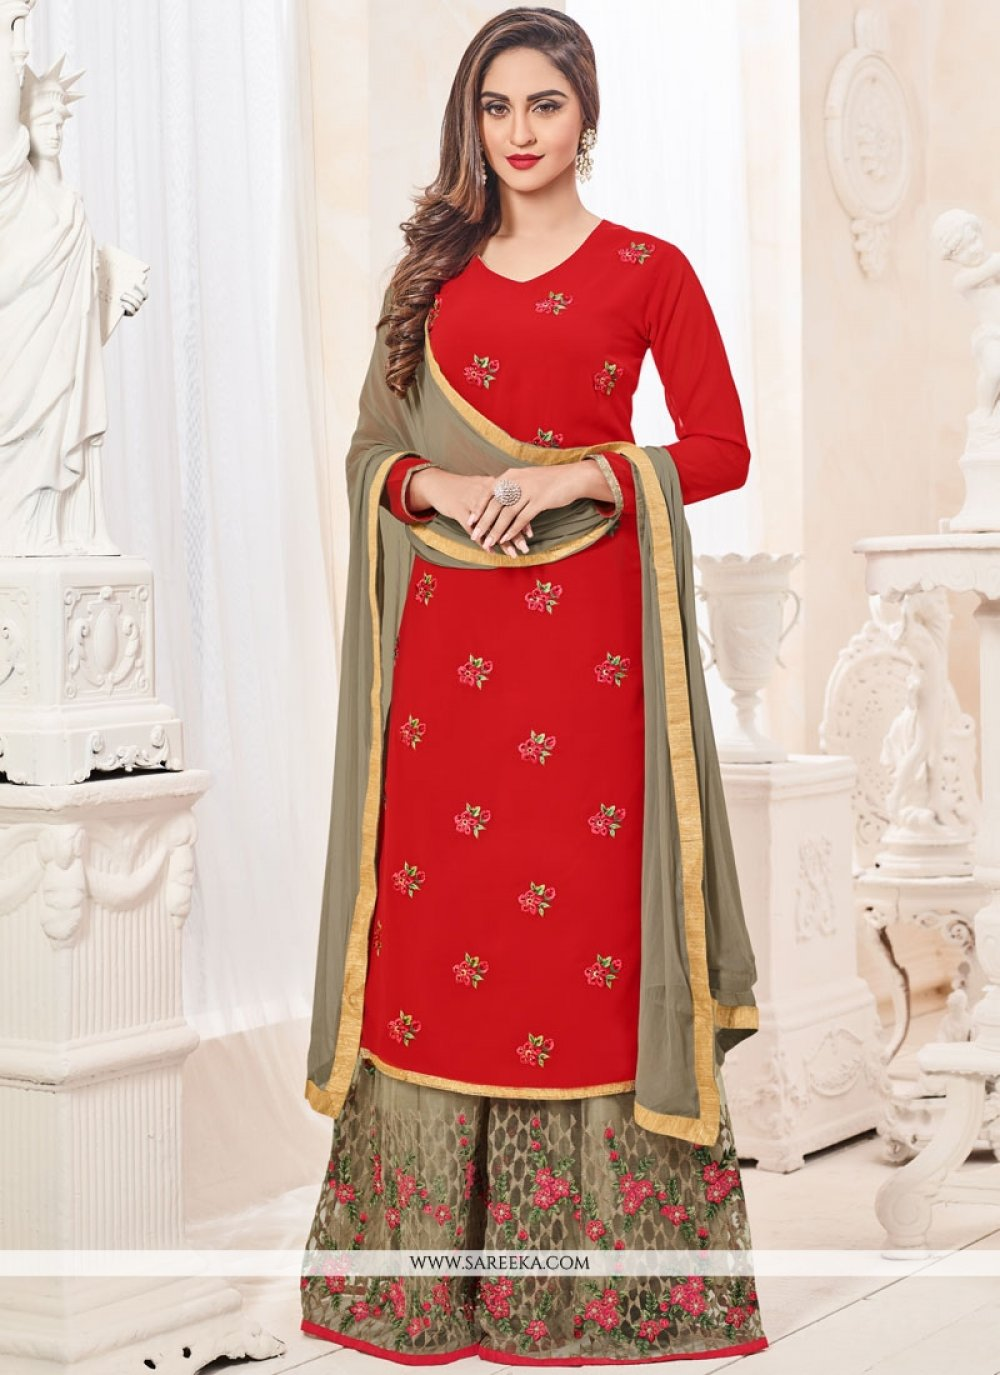 Krystle Dsouza Red Faux Georgette Embroidered Work Designer Palazzo Suit